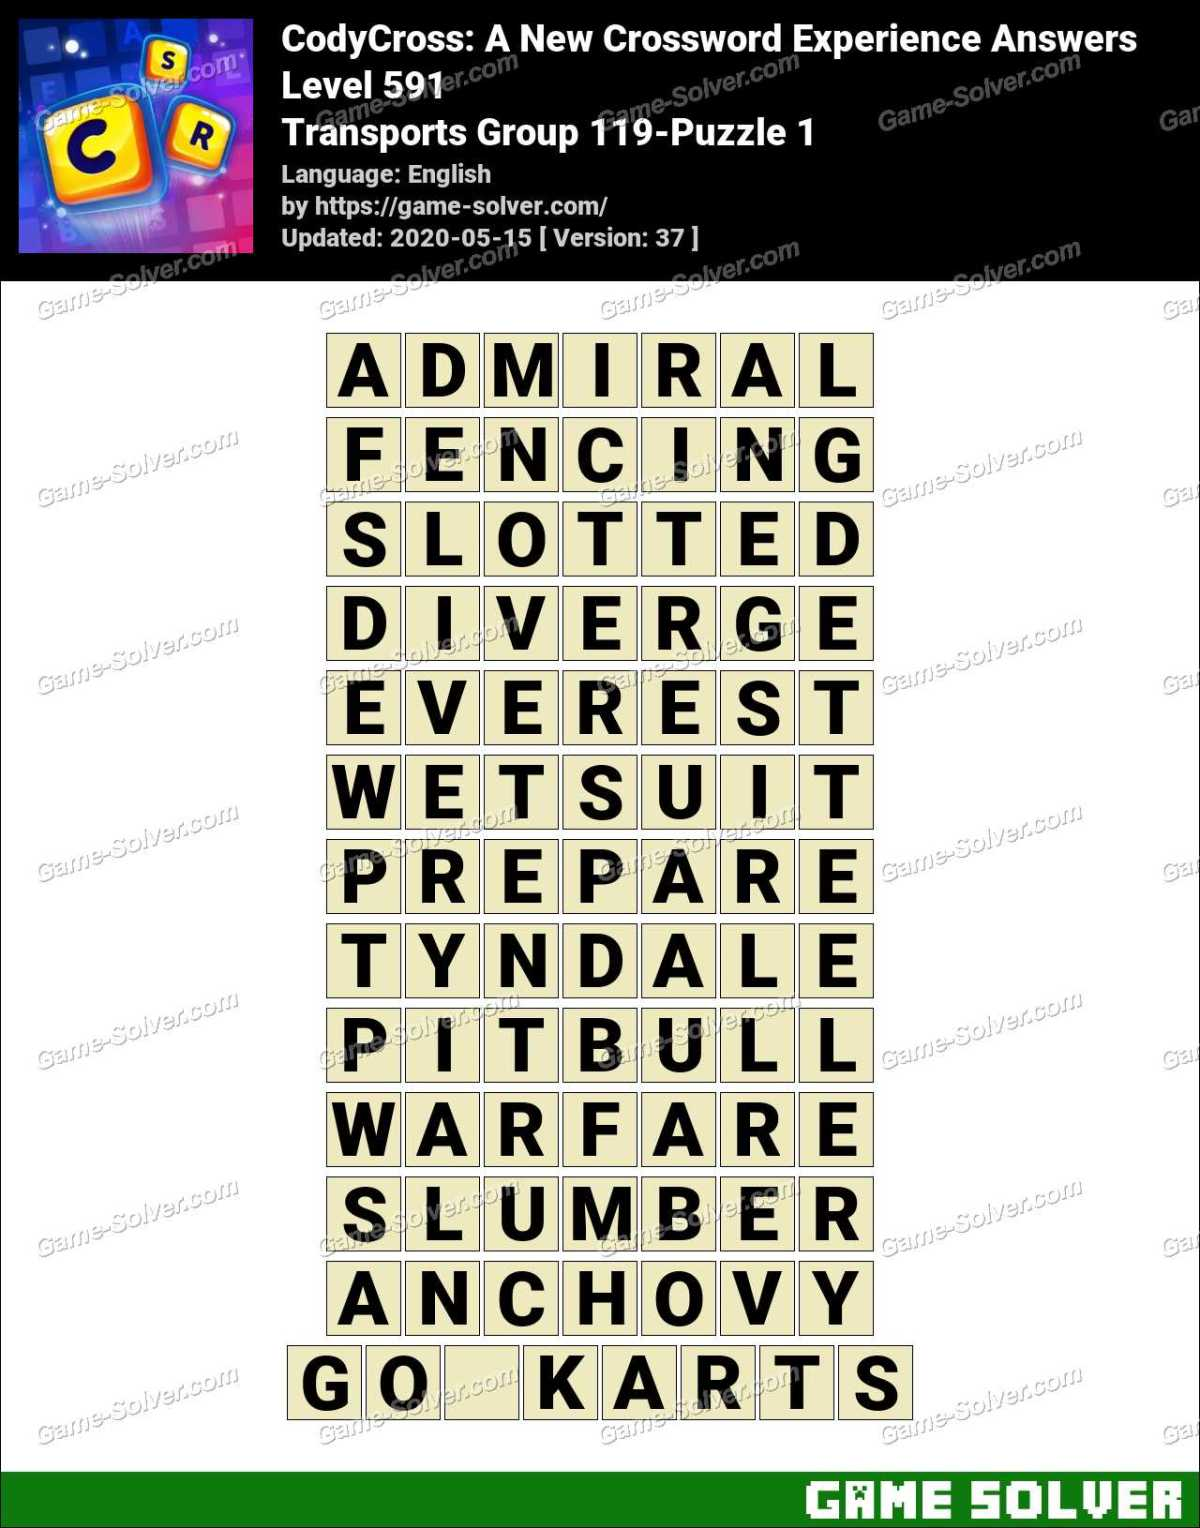 CodyCross Transports Group 119-Puzzle 1 Answers